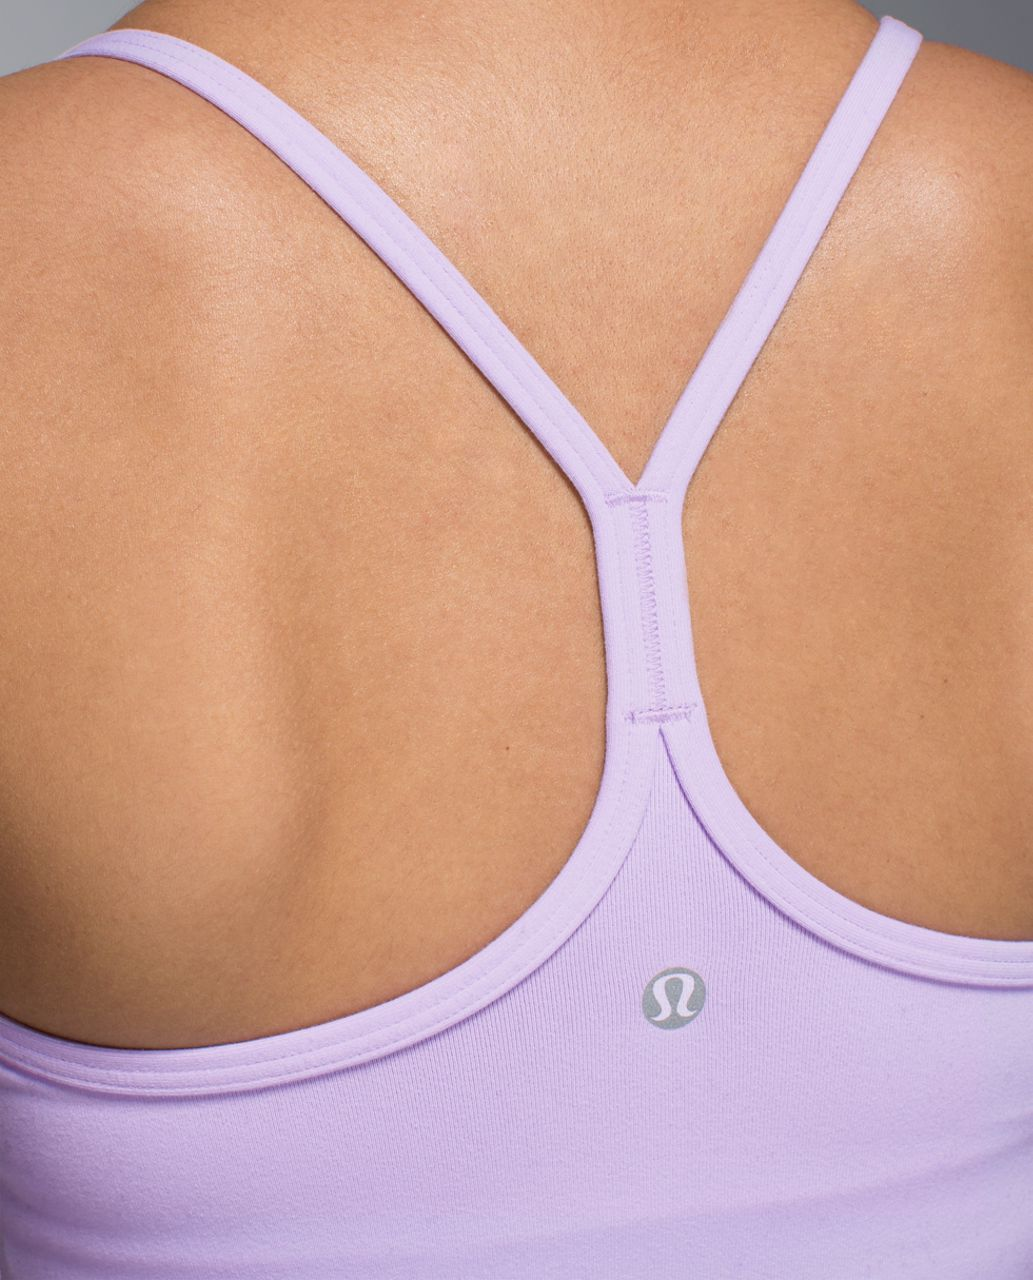 Lululemon Power Y Tank *Luon - Pretty Purple